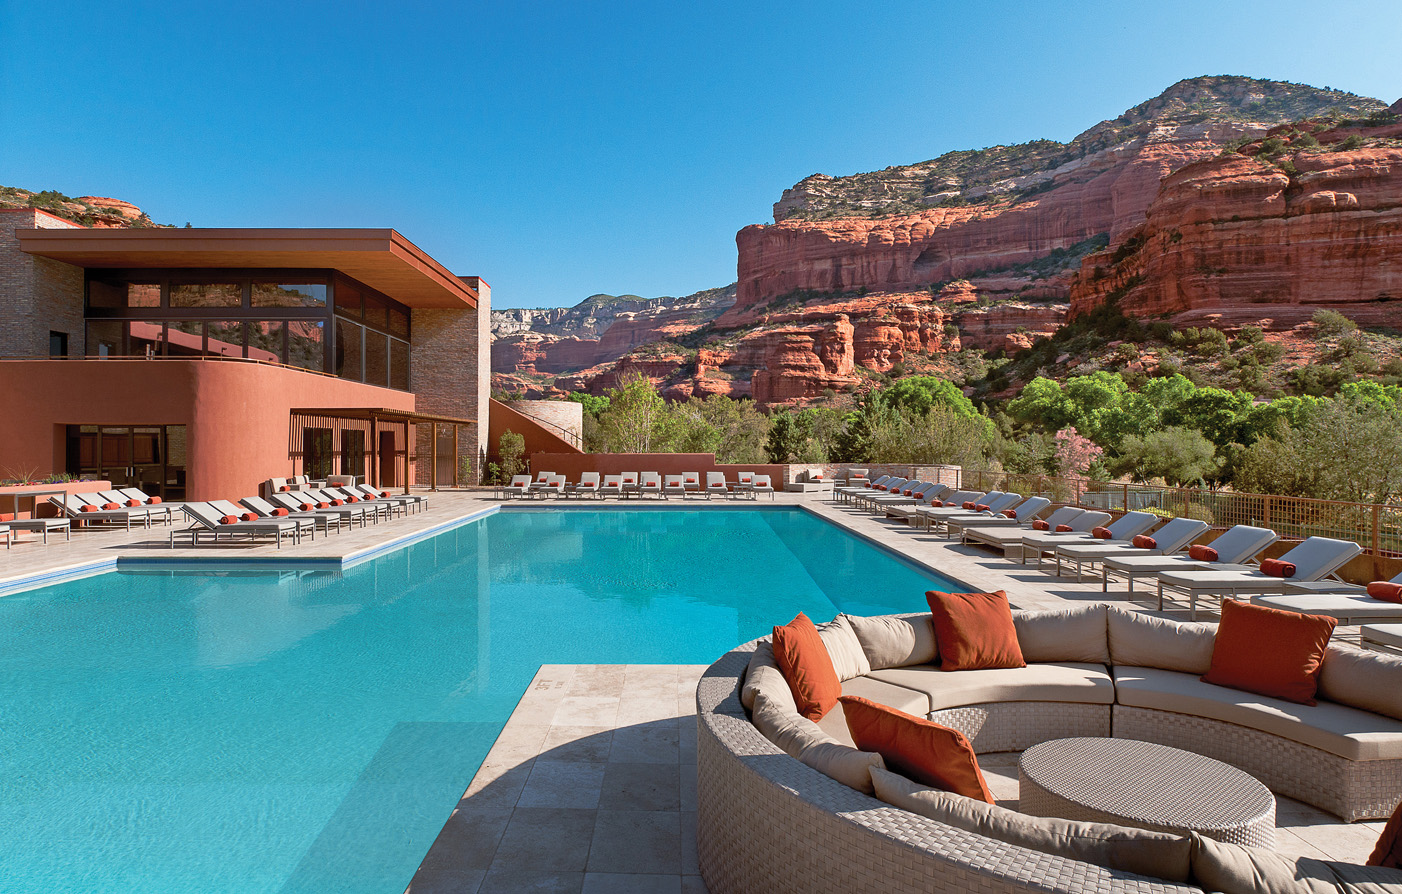 Enchantment Resort Sedona Arizona Preferred Hotels And Resorts